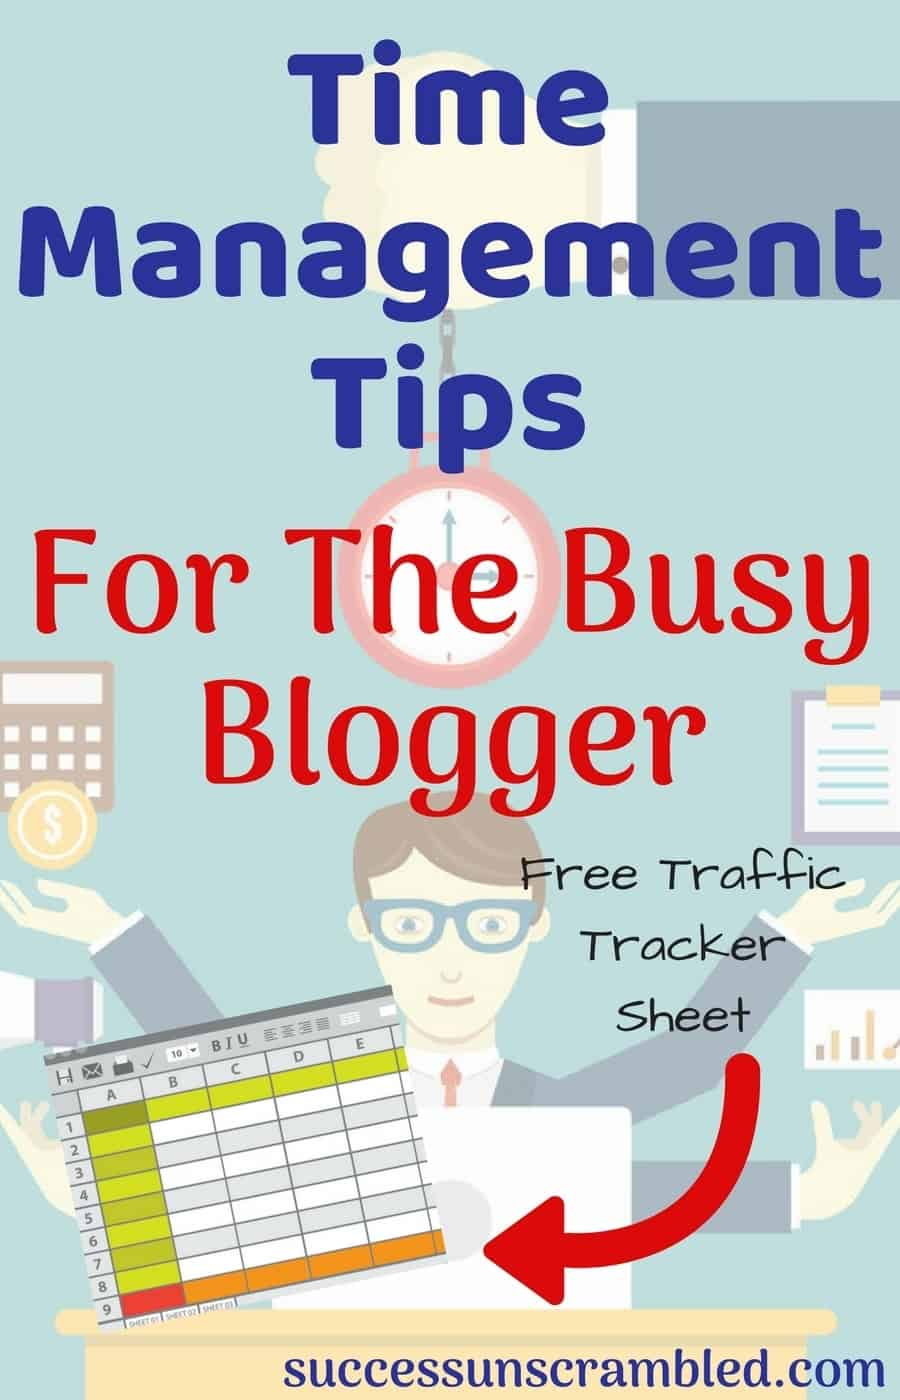 Time management tips are most valuable when you can see a return on investment as a blogger. Have you tracked your return on time invested in your blog? Grab these 9 time management tips as well as this productivity tracker to generate your first $5,000 a month.